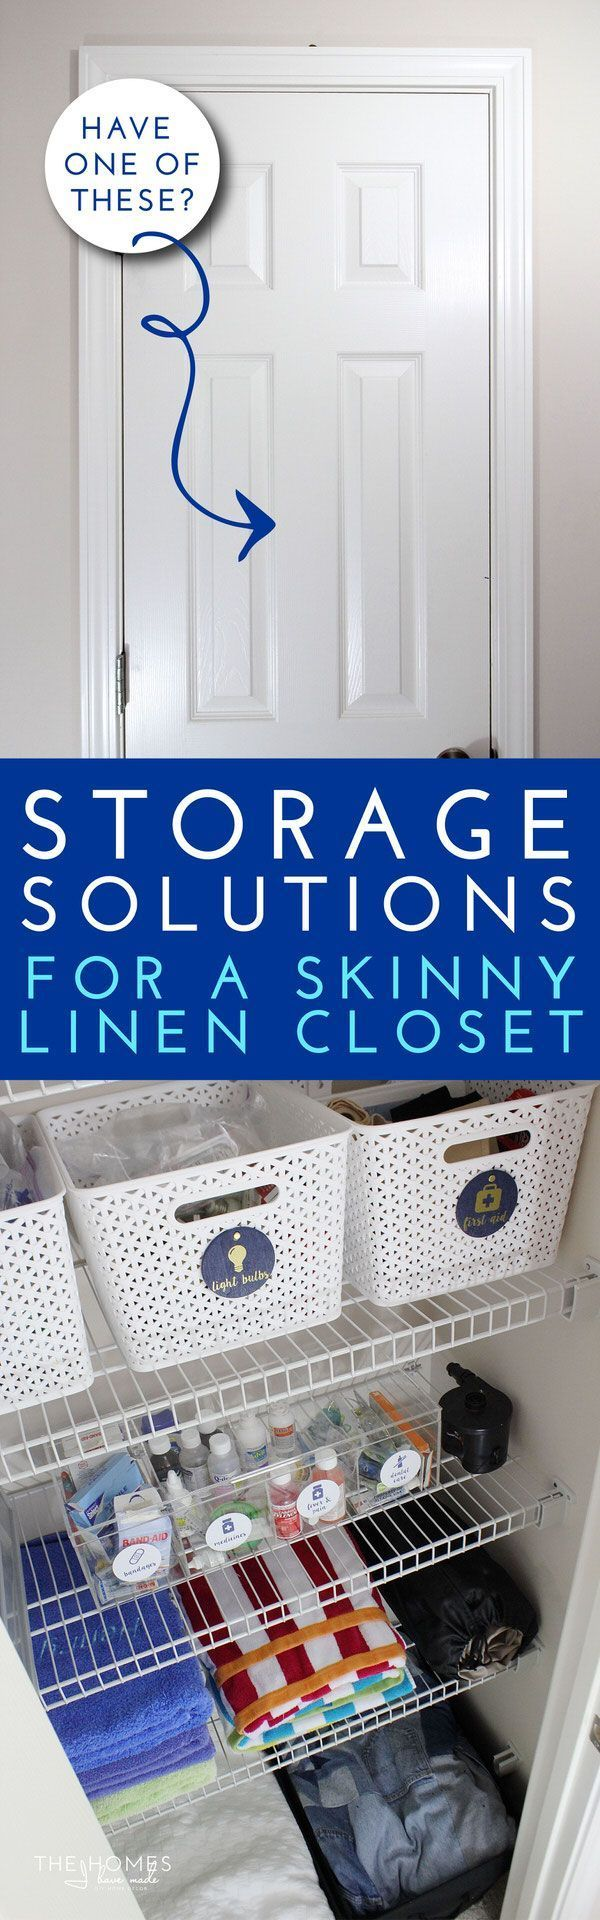 Make the most of every inch you have in your linen closet by using these smart and savvy storage solutions for table linens, batteries, medicine, towels, blankets and more!